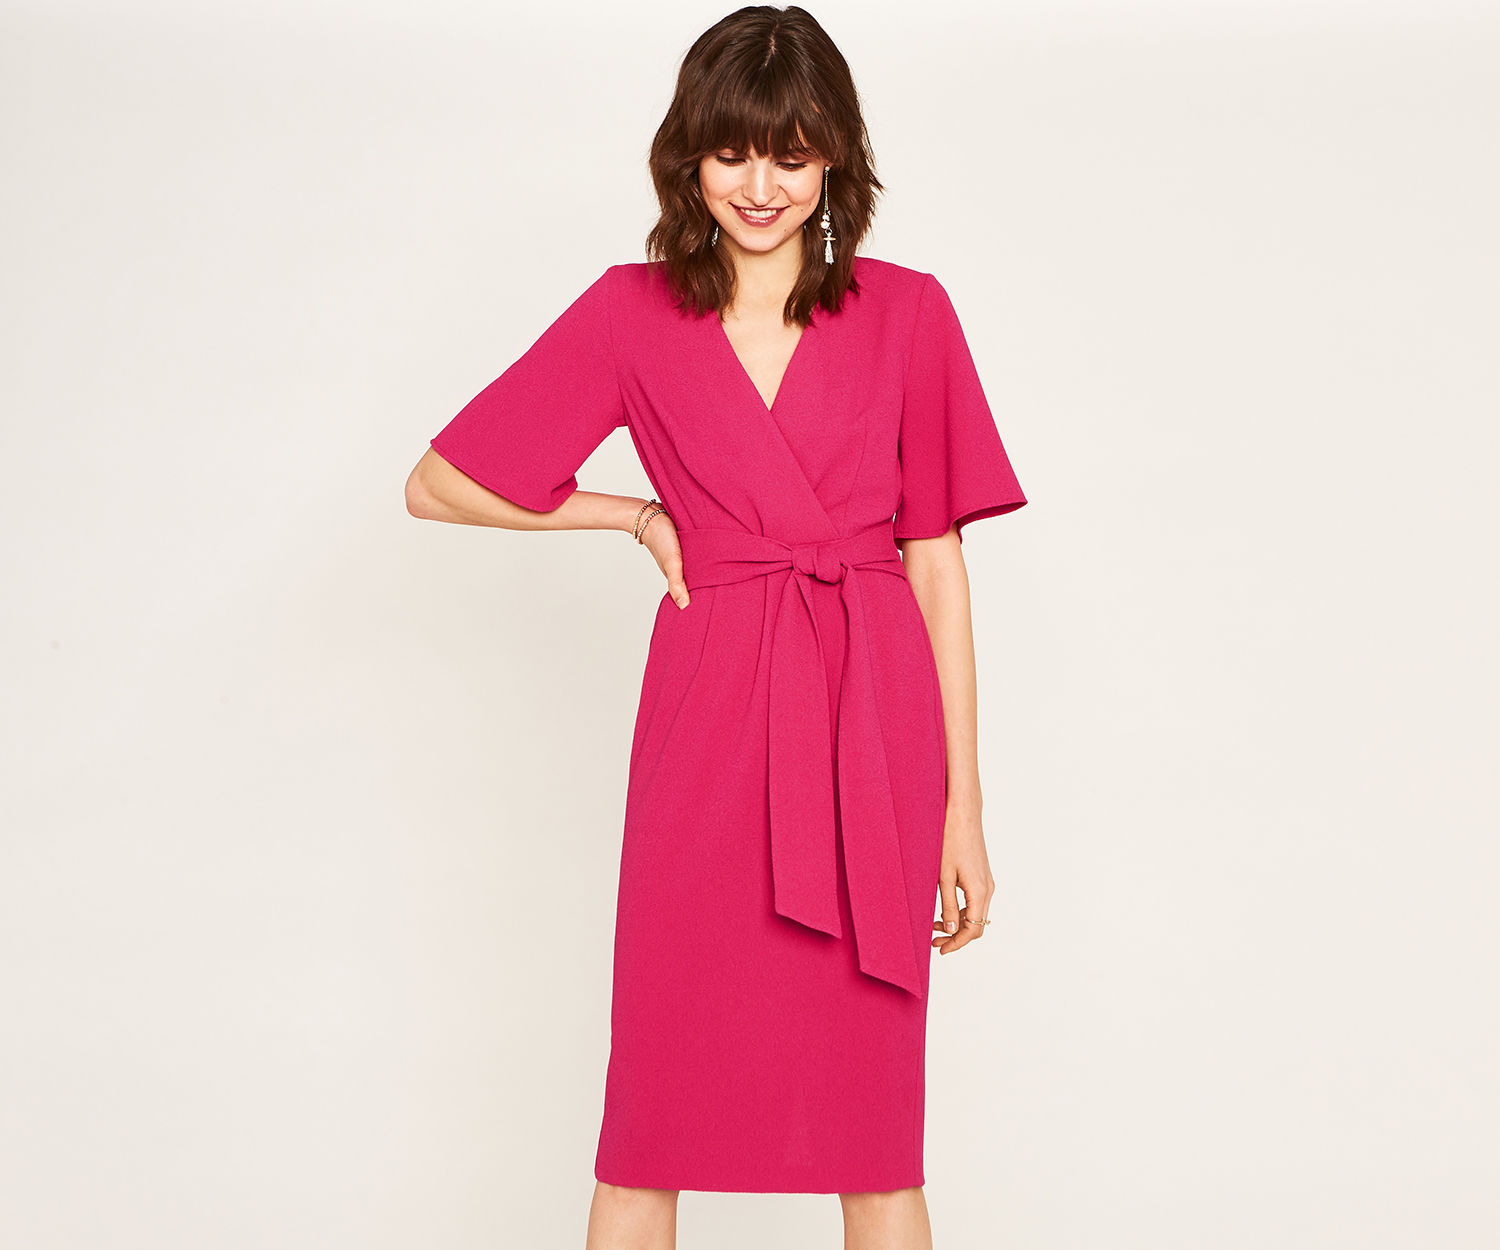 Oasis Mid Pink Angel Sleeve Tie Dress - UK style blog